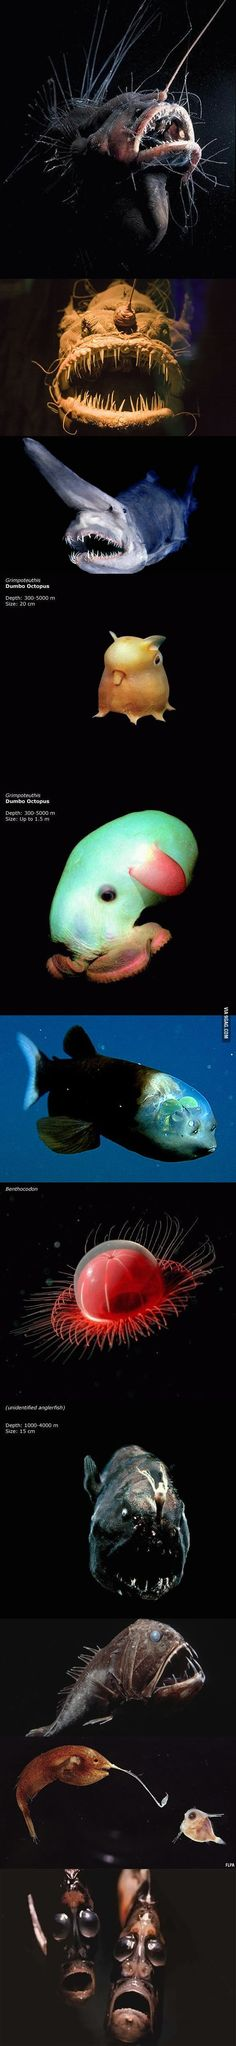 Creatures from the Mariana Trench